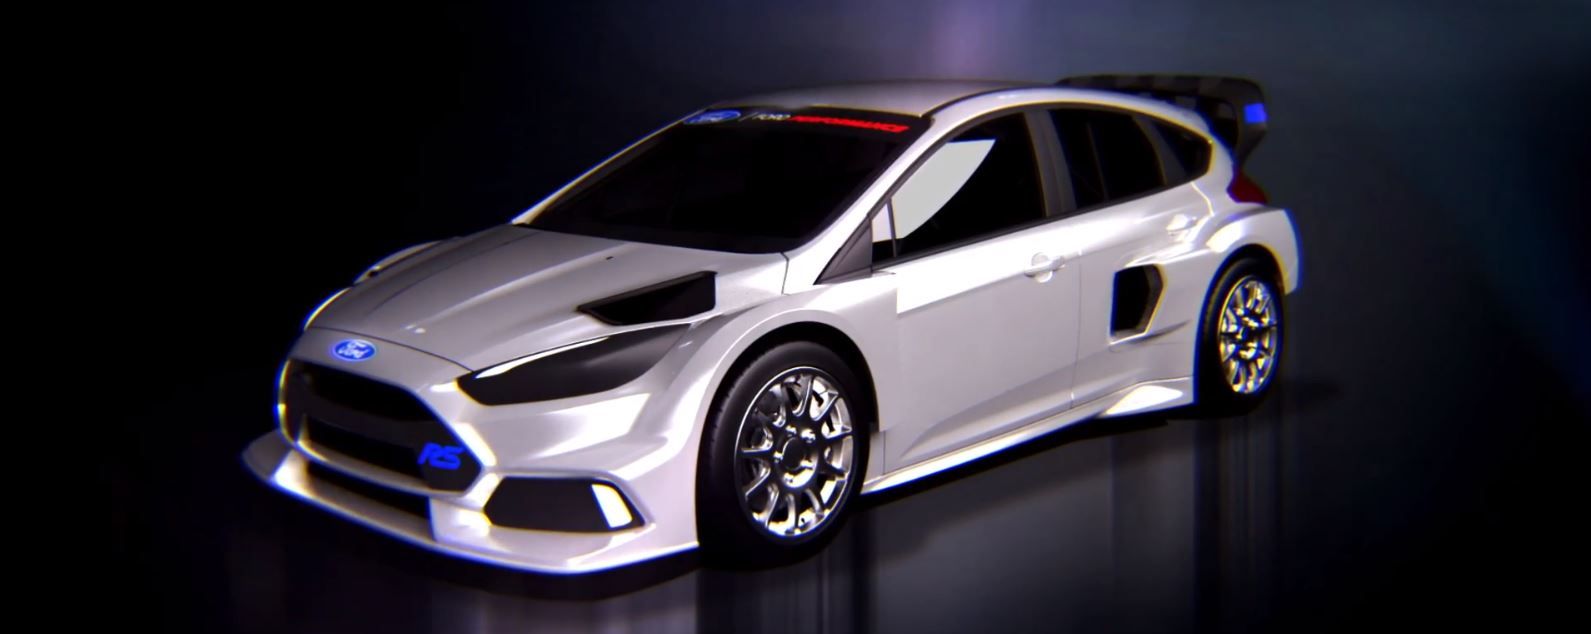 D Ford Focus Rs Rx Frontside